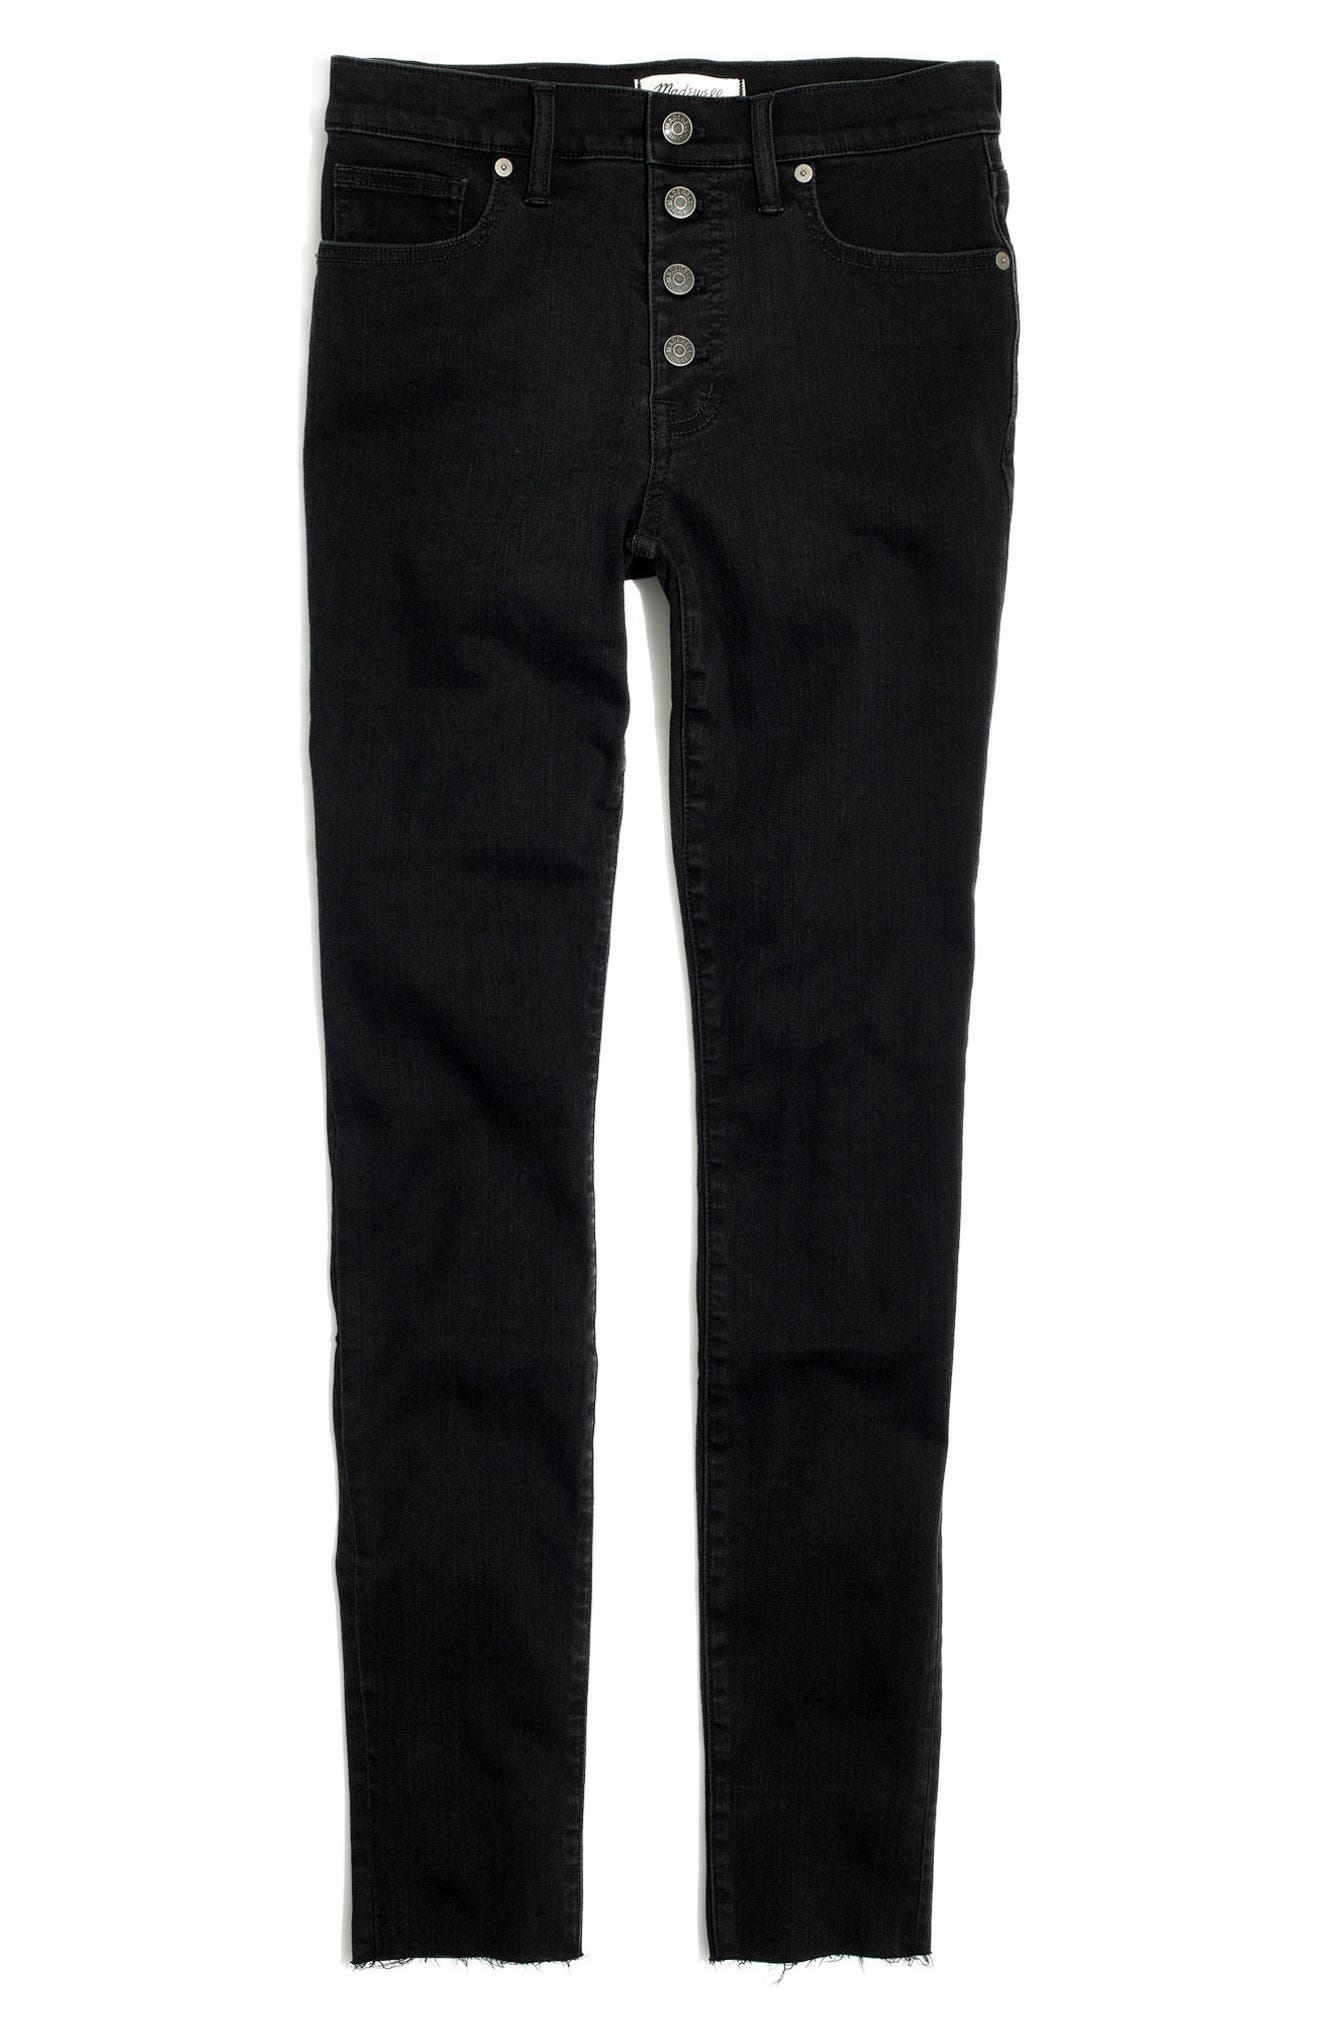 9-Inch Button High Waist Ankle Skinny Jeans,                             Alternate thumbnail 4, color,                             Berkeley Wash